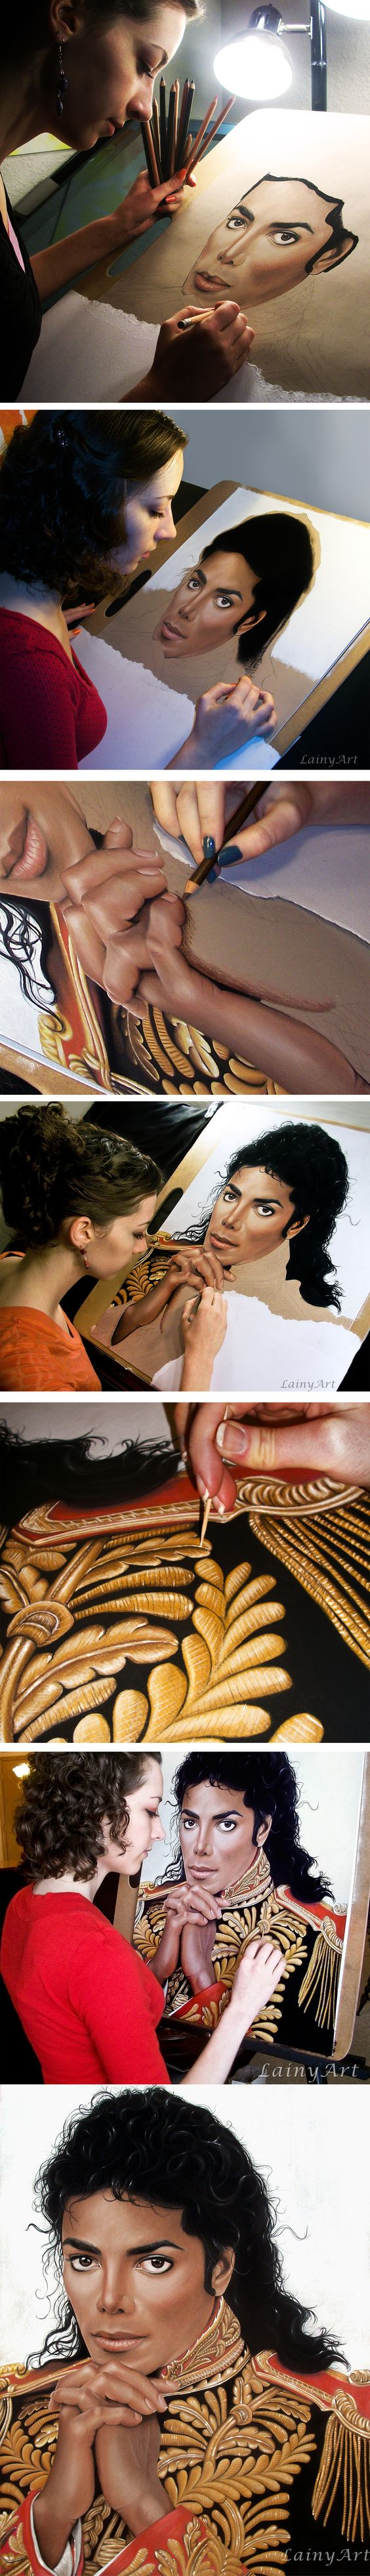 "pinner: ""The process of creating my biggest and most realistic portrait to date.   Michael Jackson drawn using pastel pencils and acrylic paint highlights applied with a toothpick. This took me about 200 hours to finish."""